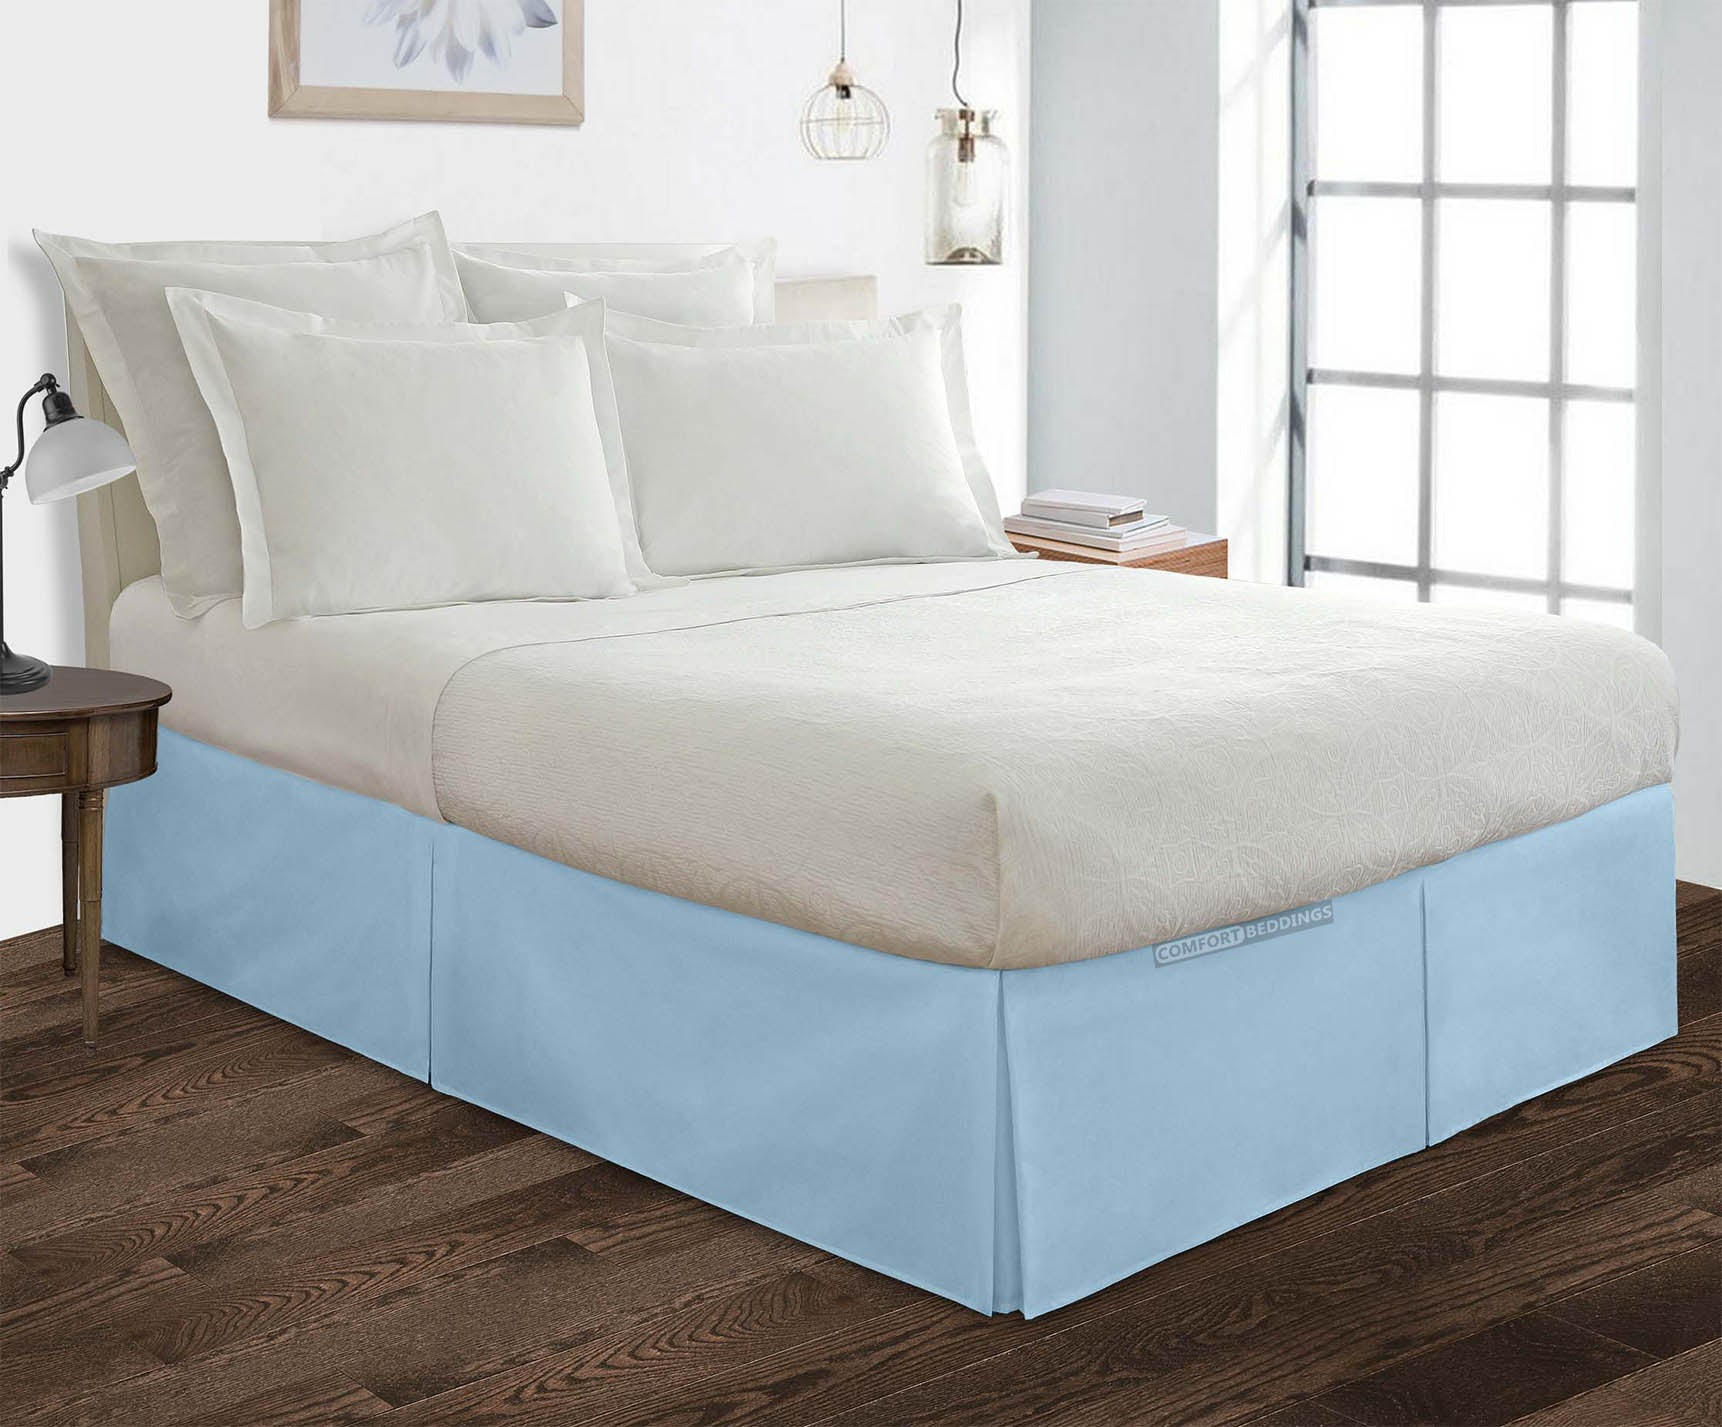 100% Cotton Light blue pleated bed skirt